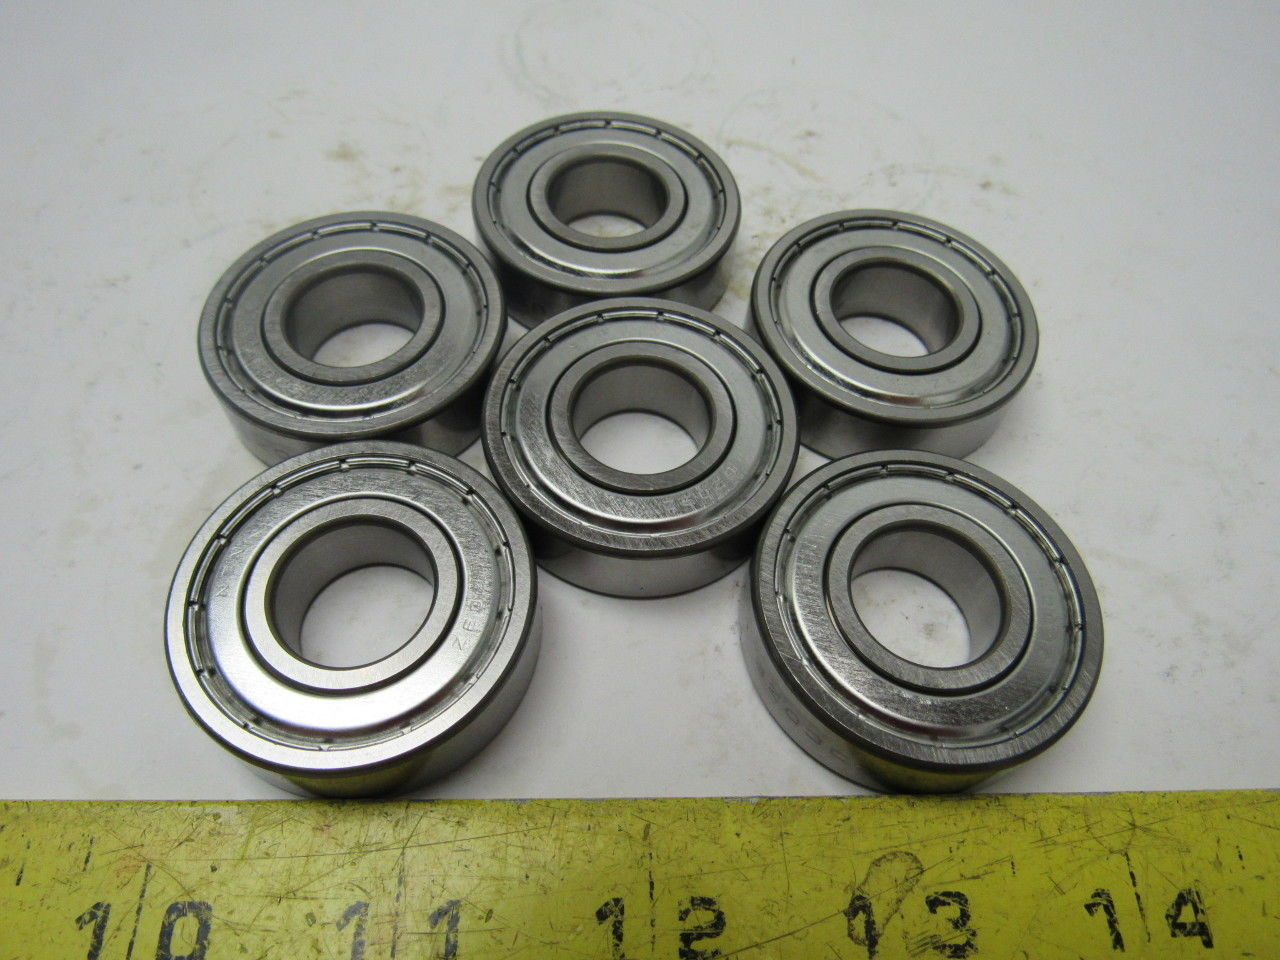 high temperature NTN 6203C3ZZ Single Row Radial Ball Bearing 17x40x12mm Lot of 6 New/No Box